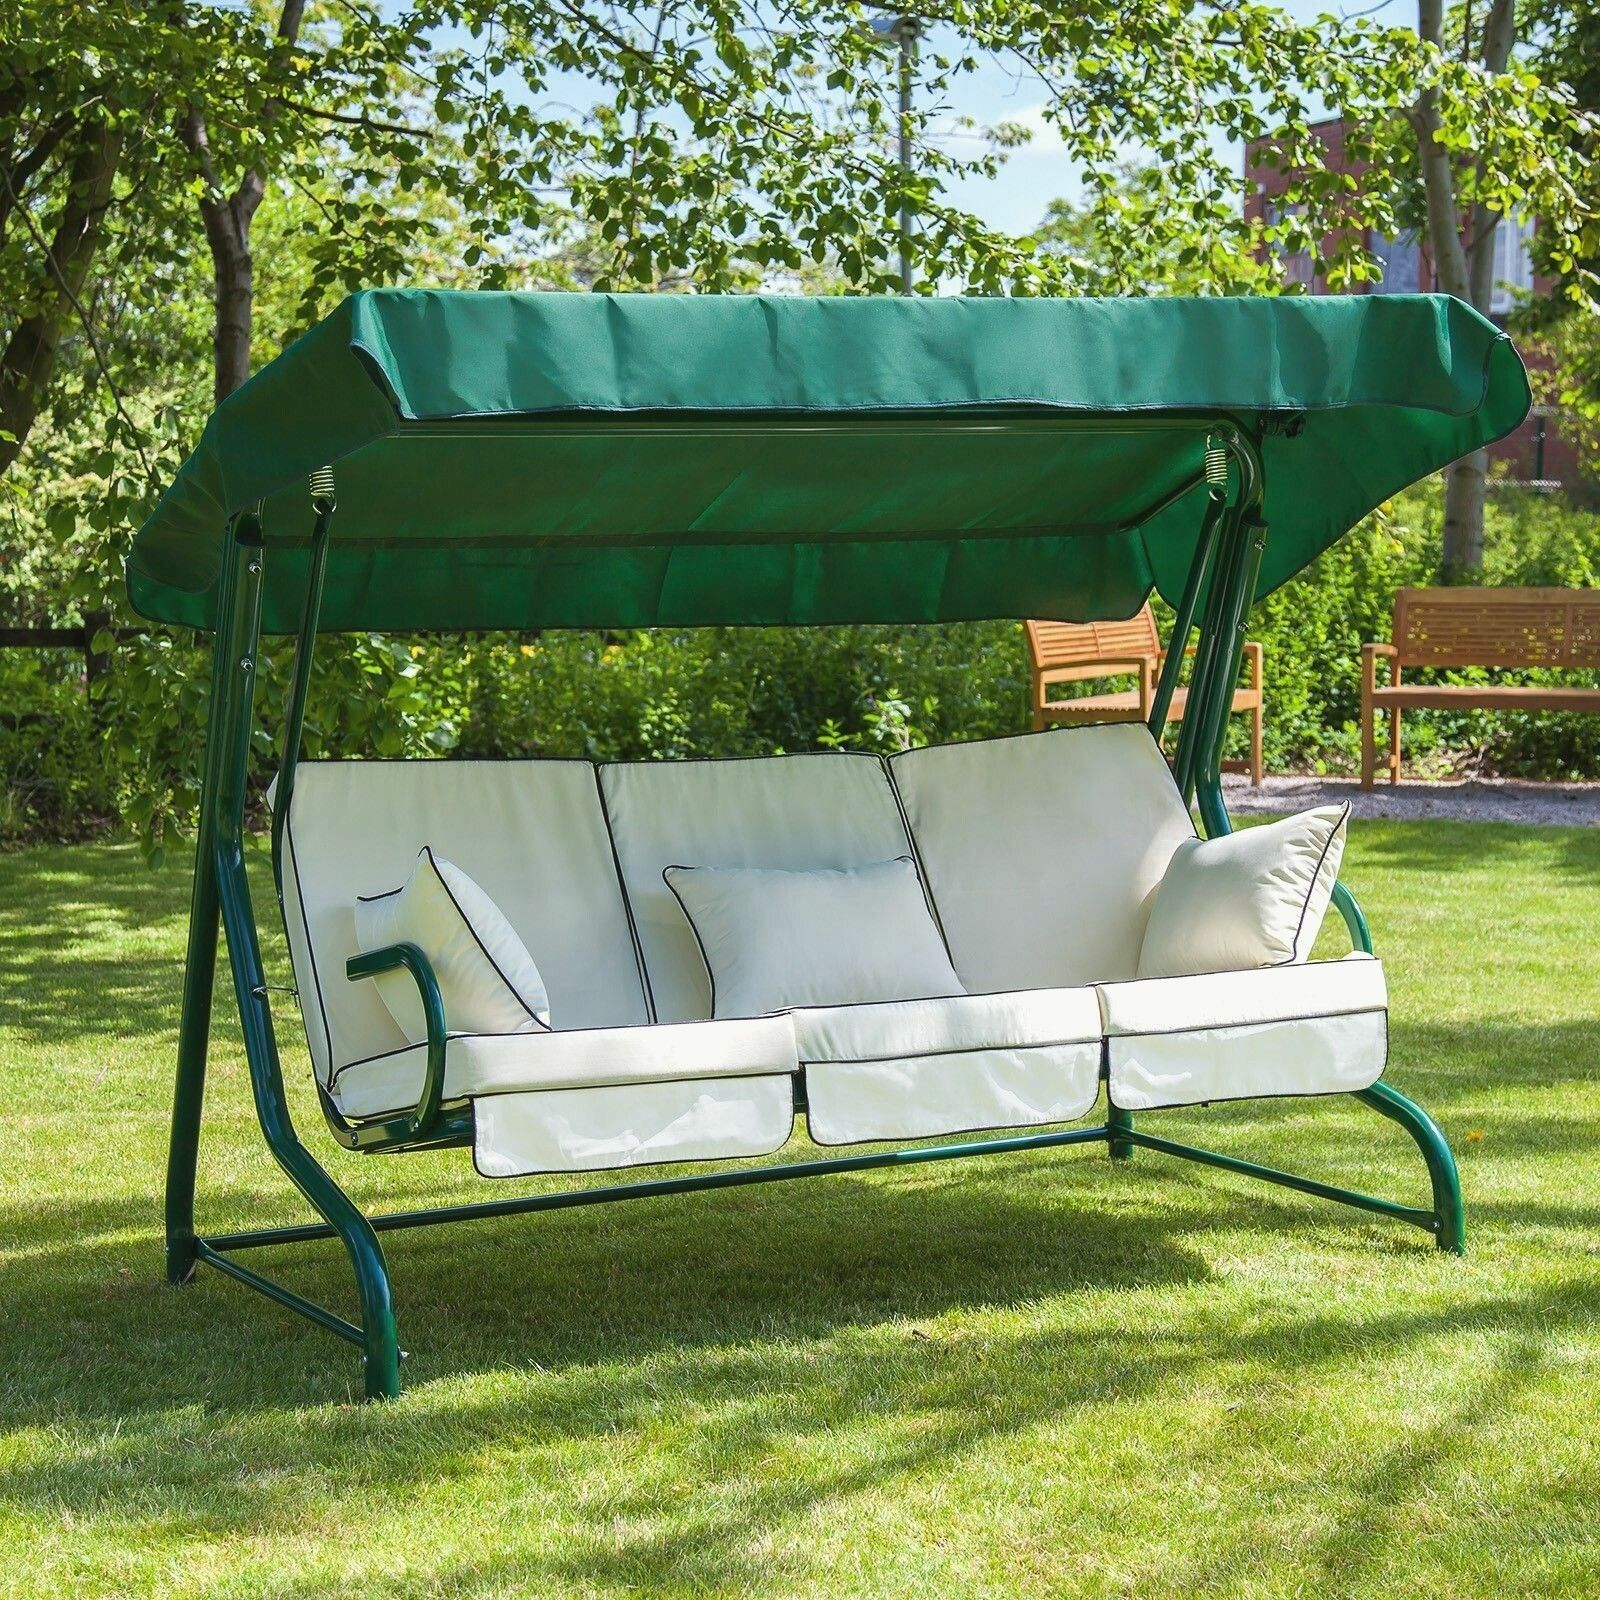 9 Awesome Garden Swing Seats for the Minimalist Home Garden